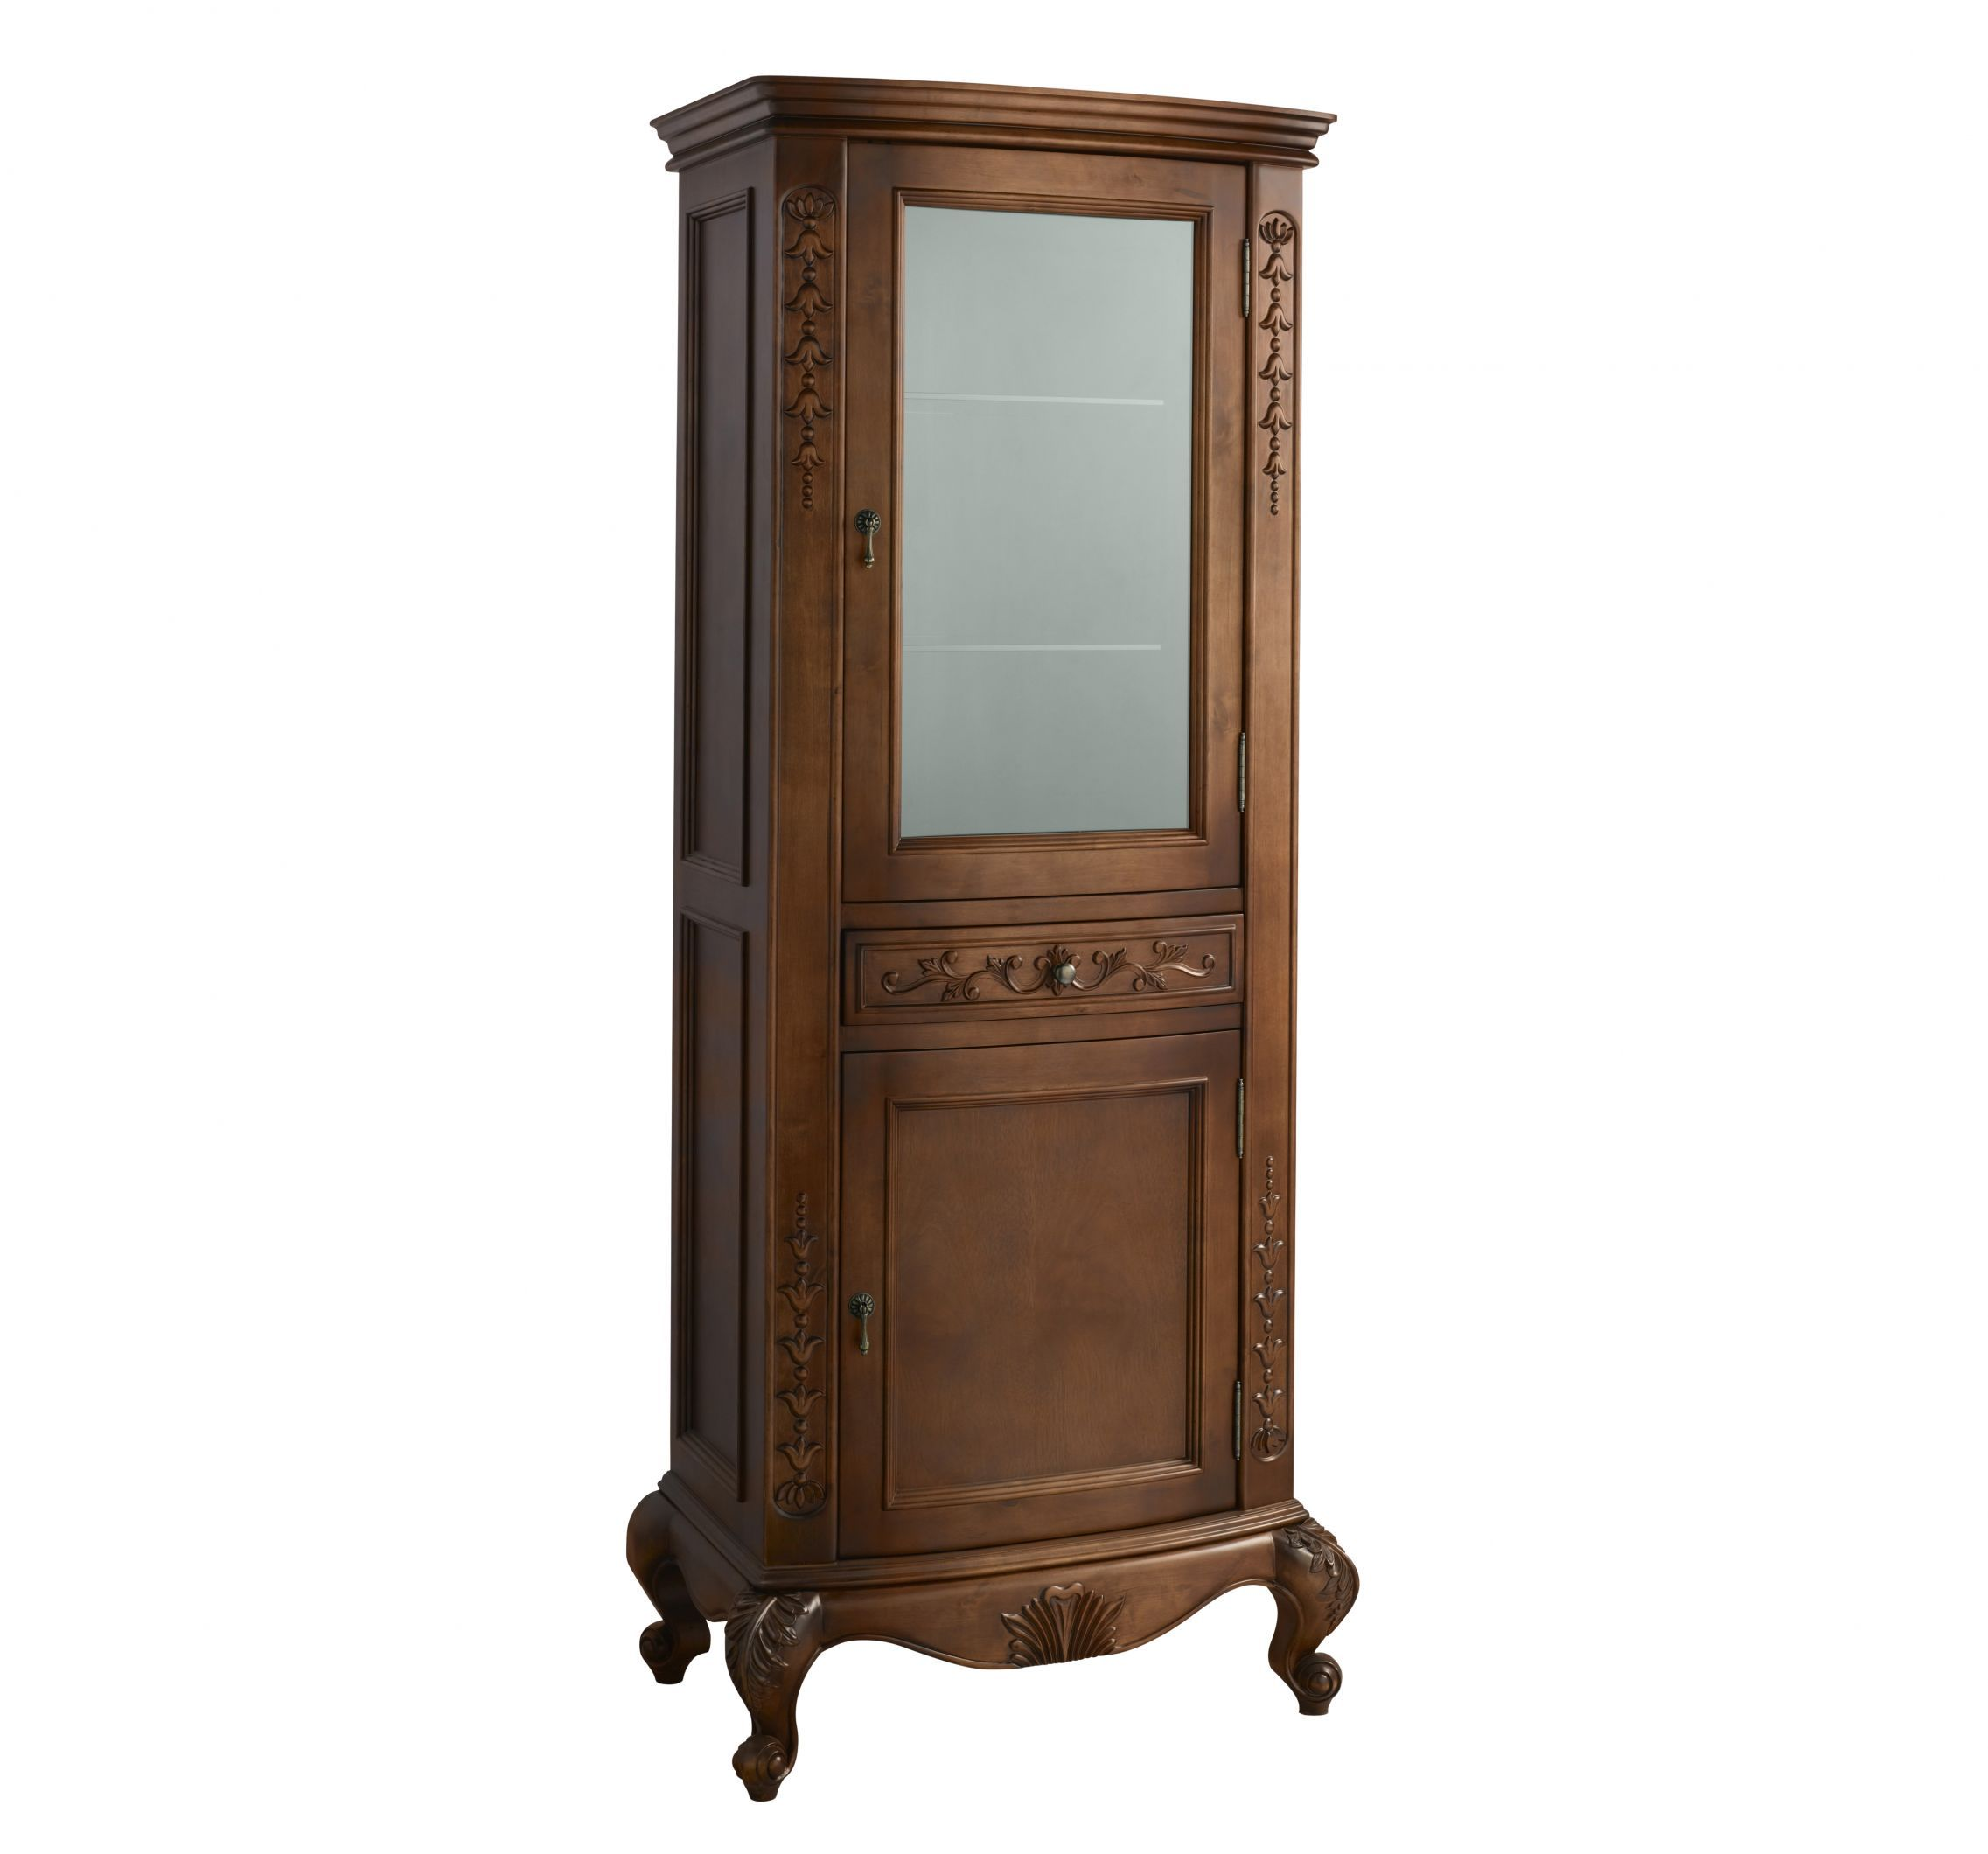 Unique Tall Display Cabinet with Glass Doors